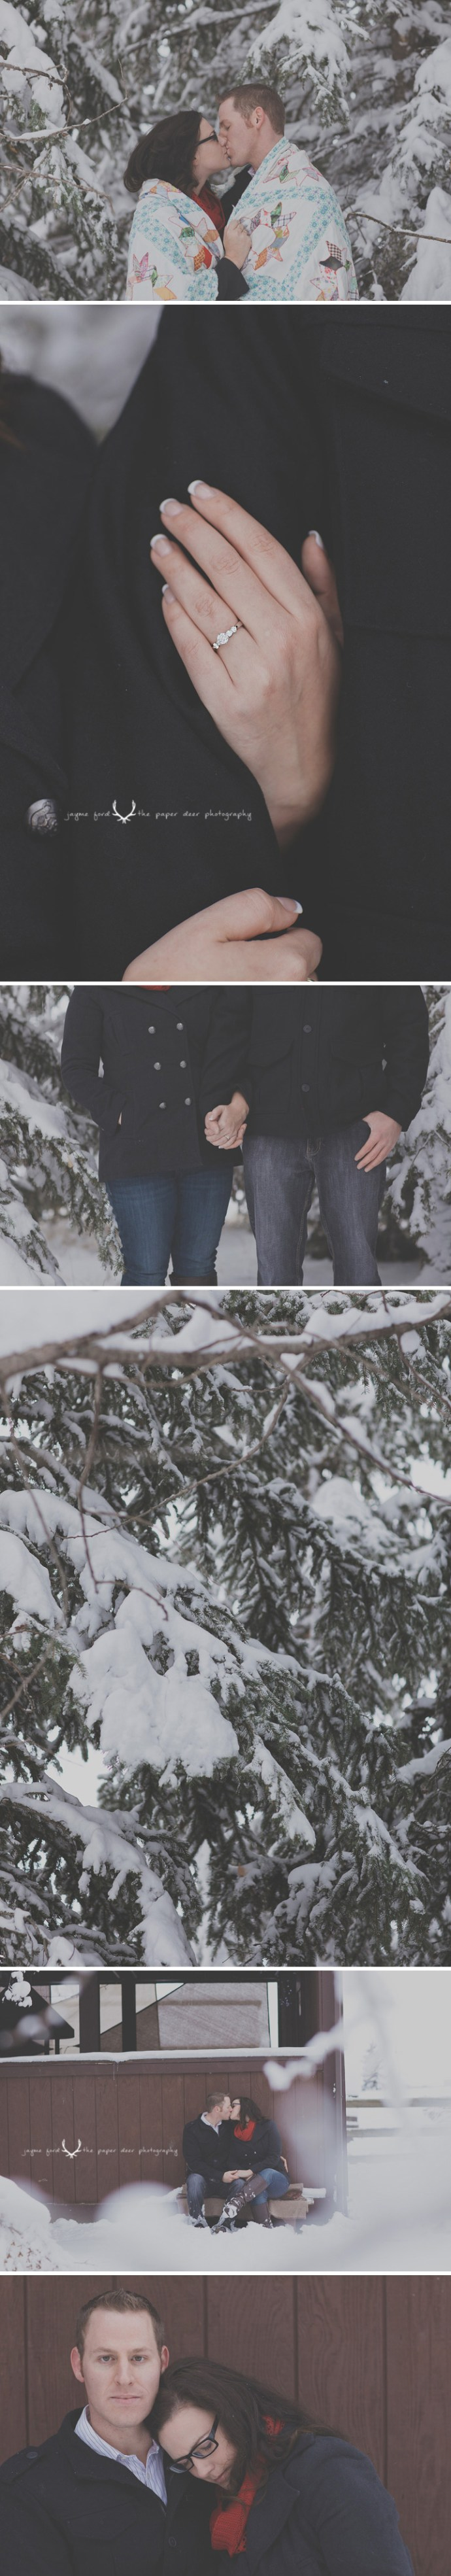 winter engagement ➾ ©The Paper Deer Photography ➾ paperdeerphoto.com/blog